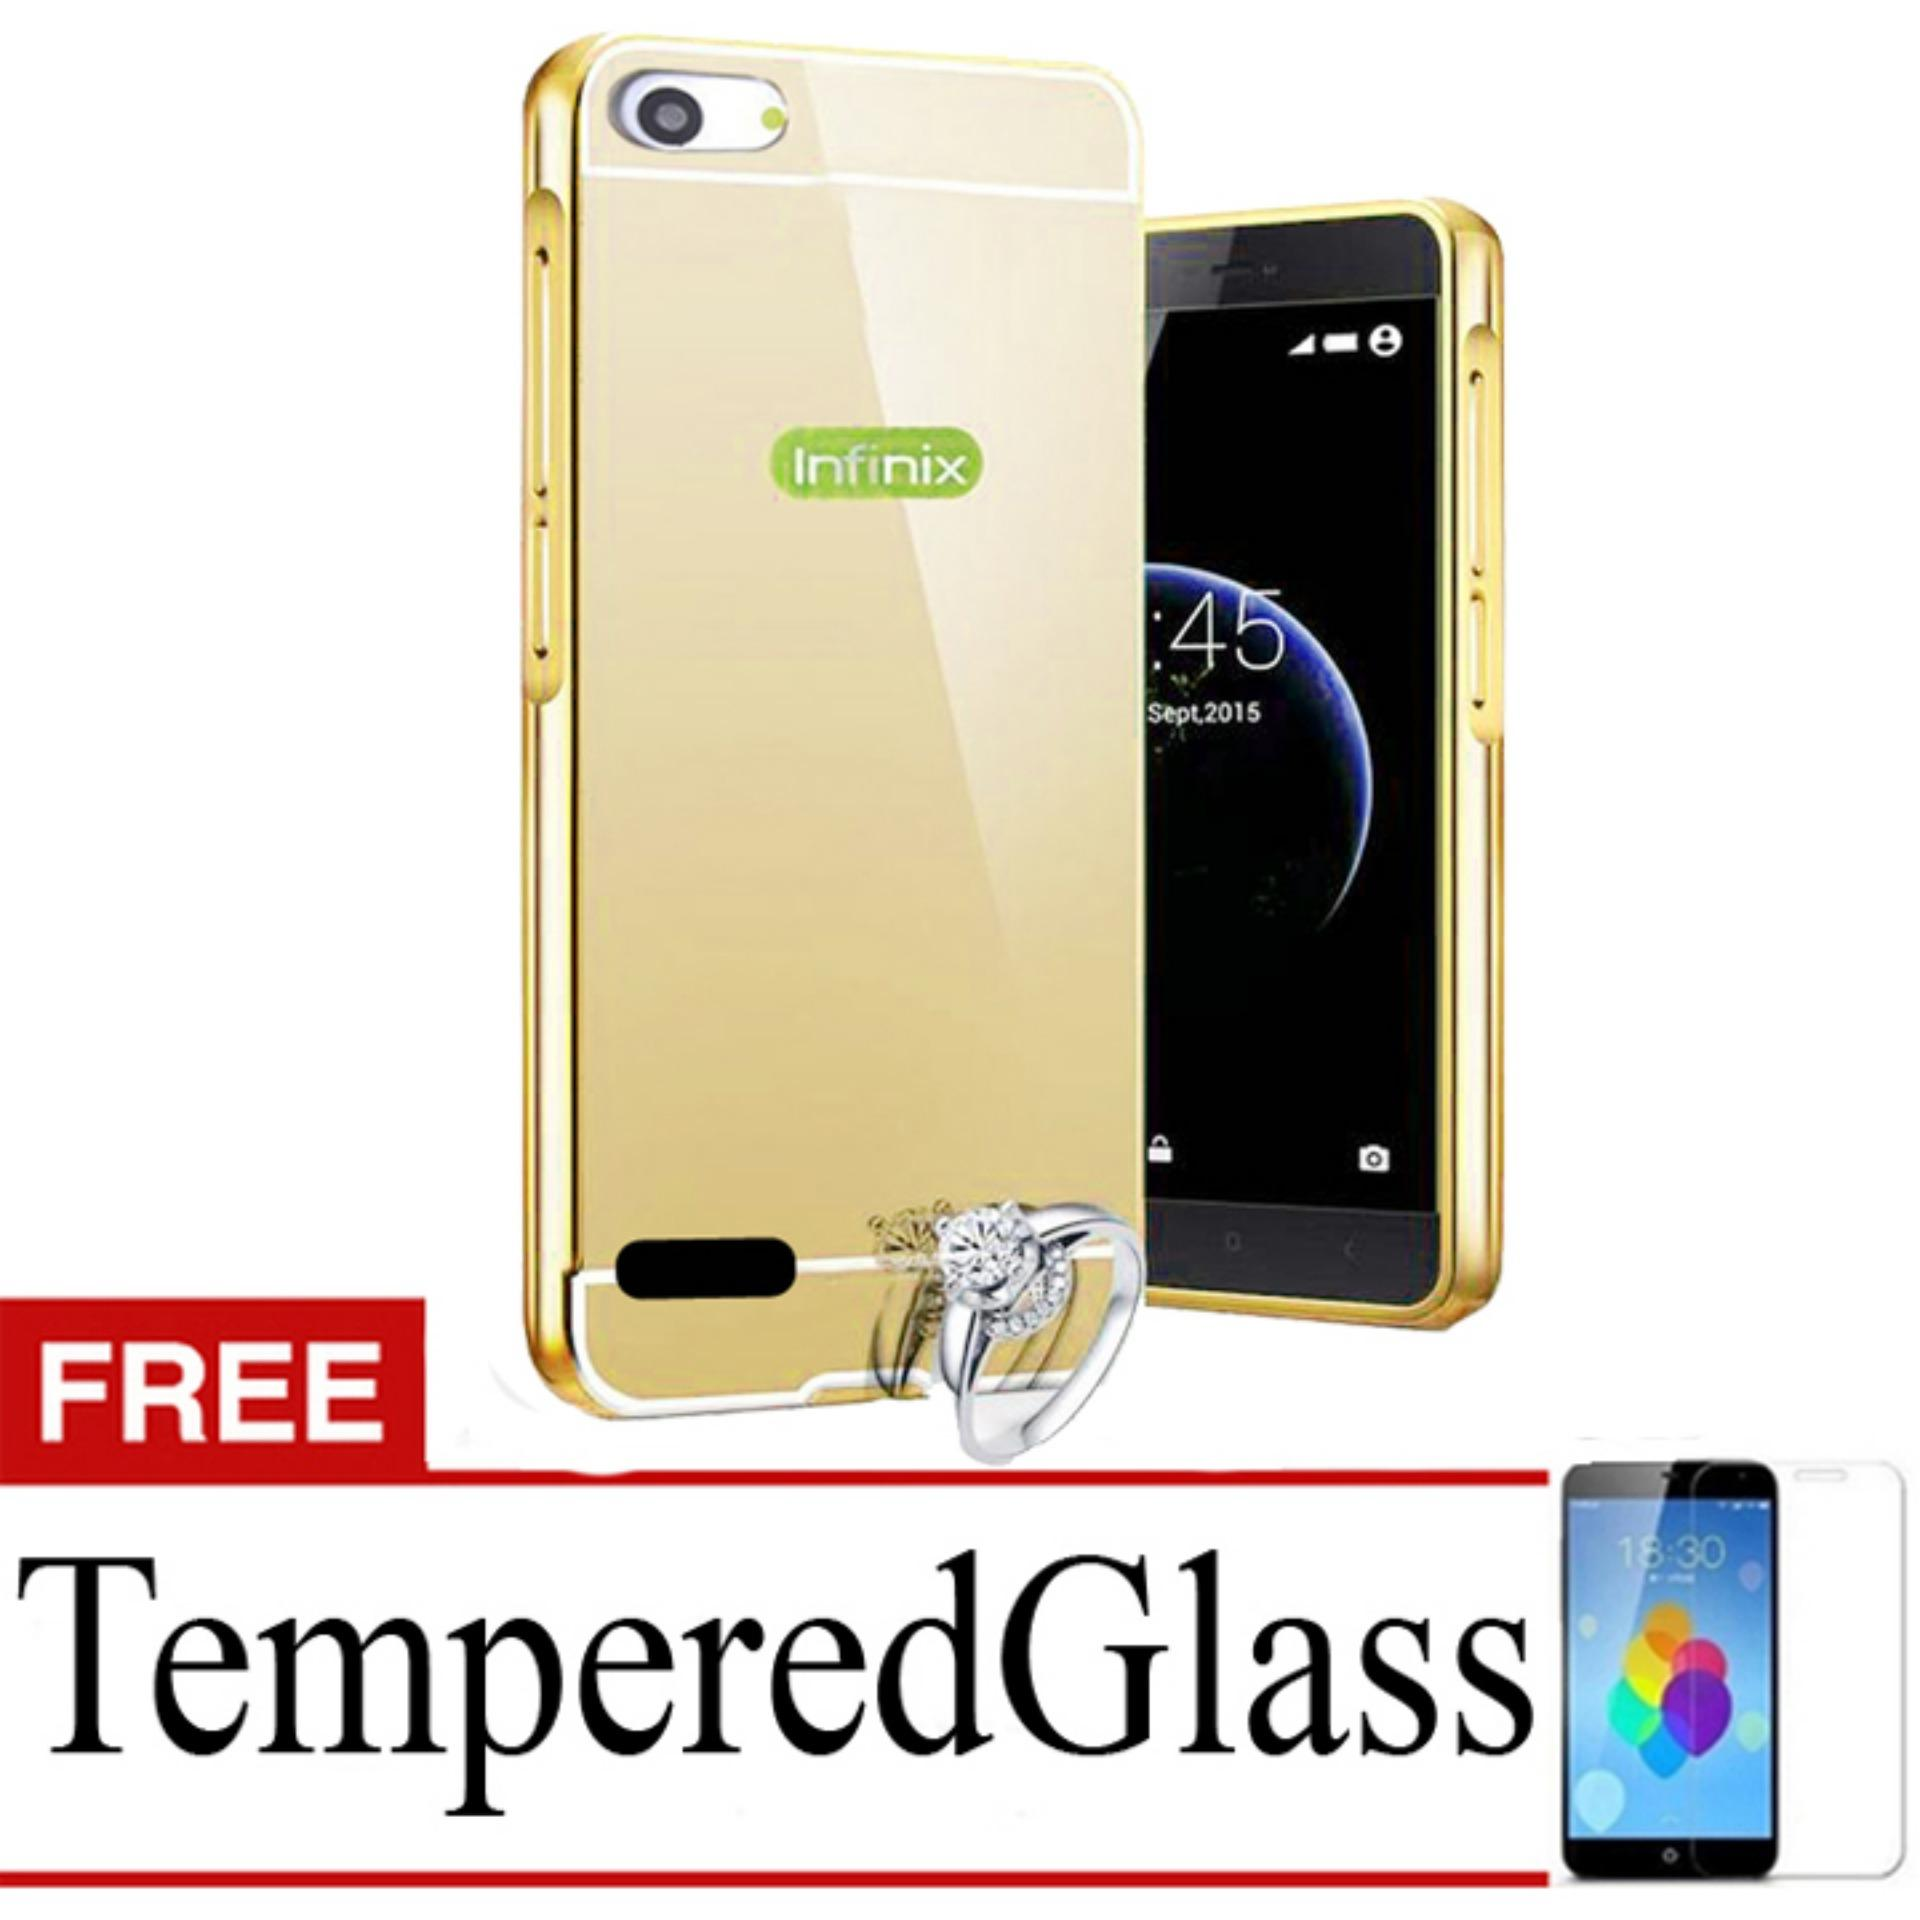 ... X Case Mirror Aluminium Bumper For Infinix Hot 3 X553 Free Tempered Glass - Gold ...